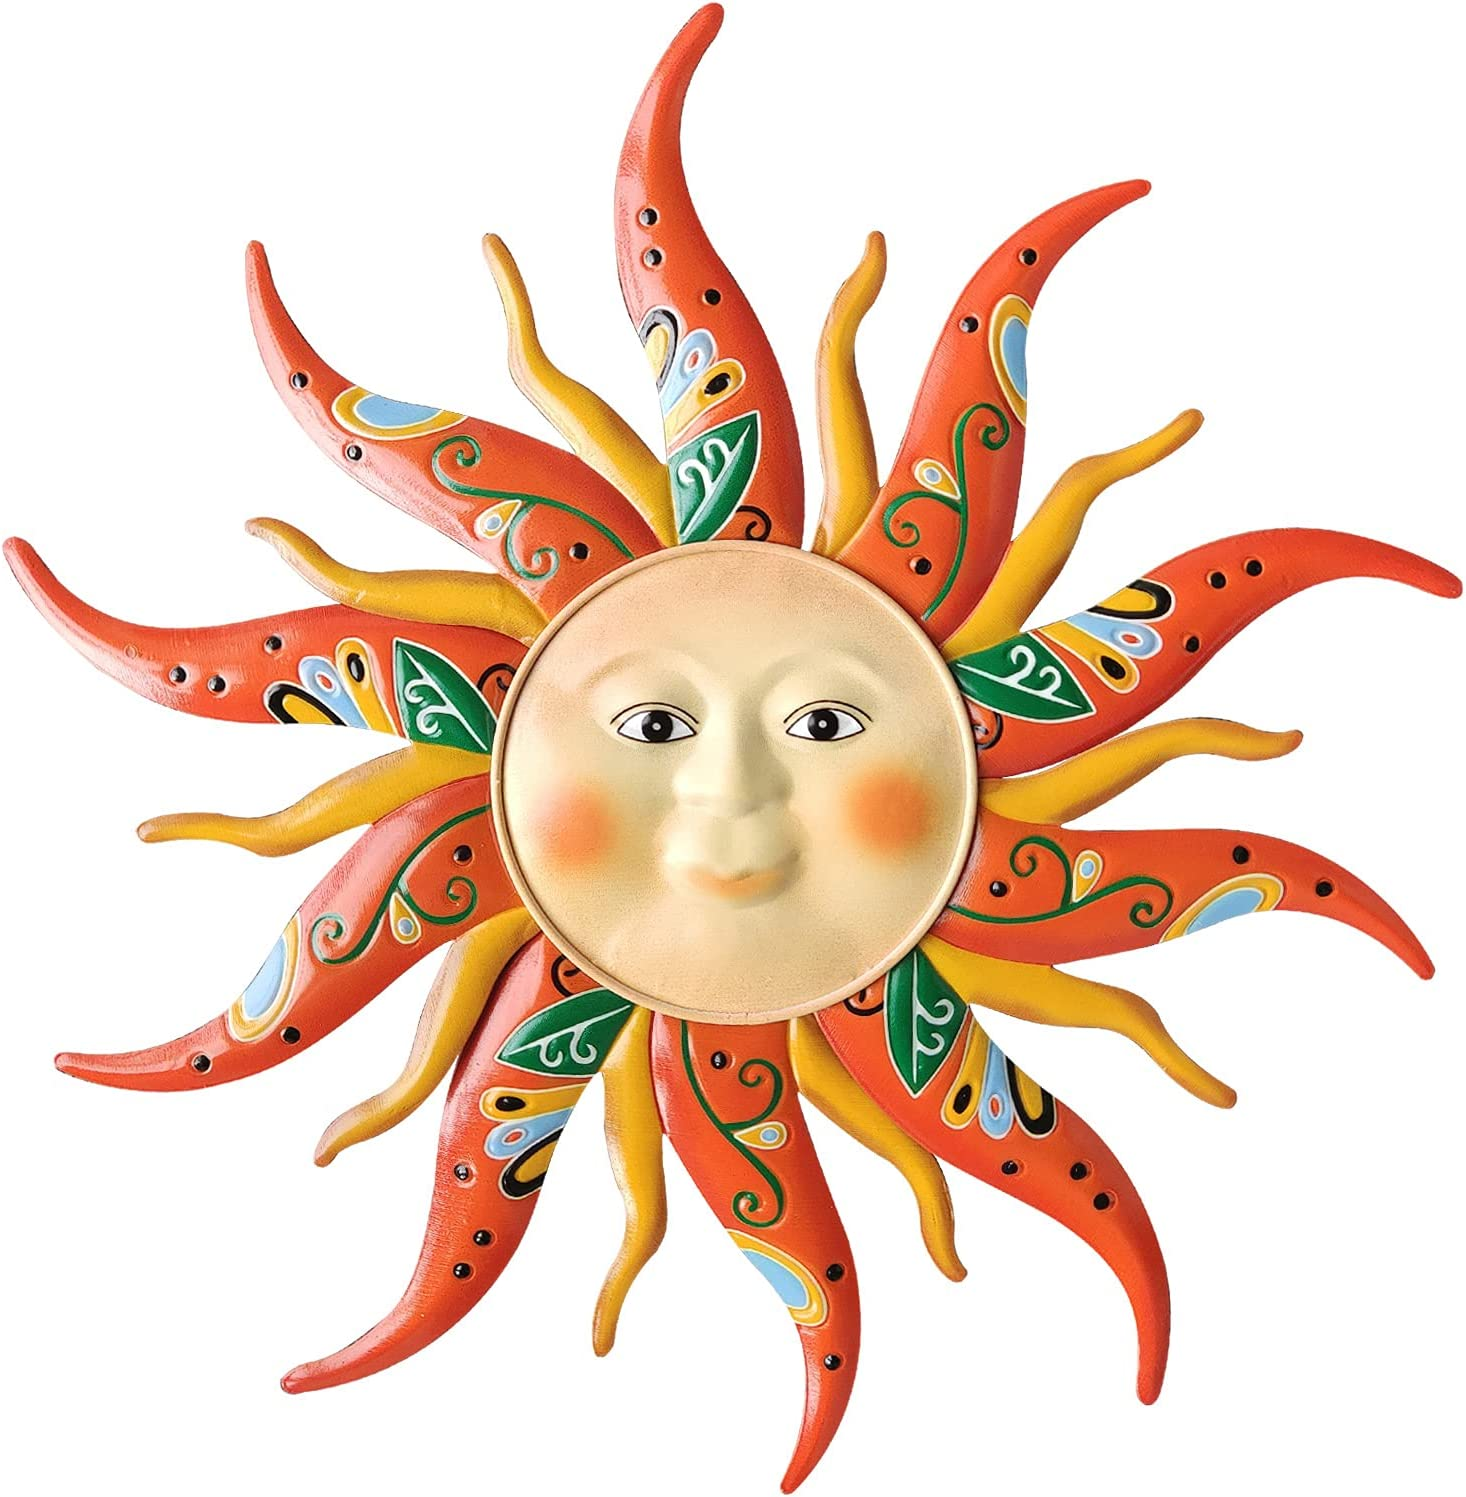 VOKPROOF Large Metal Sun Wall Art Decor - Sun Face Wall Garden Sculptures & Statues for Indoor and Outdoor, Farmhouse, Yard, Patio, Garden Decoration